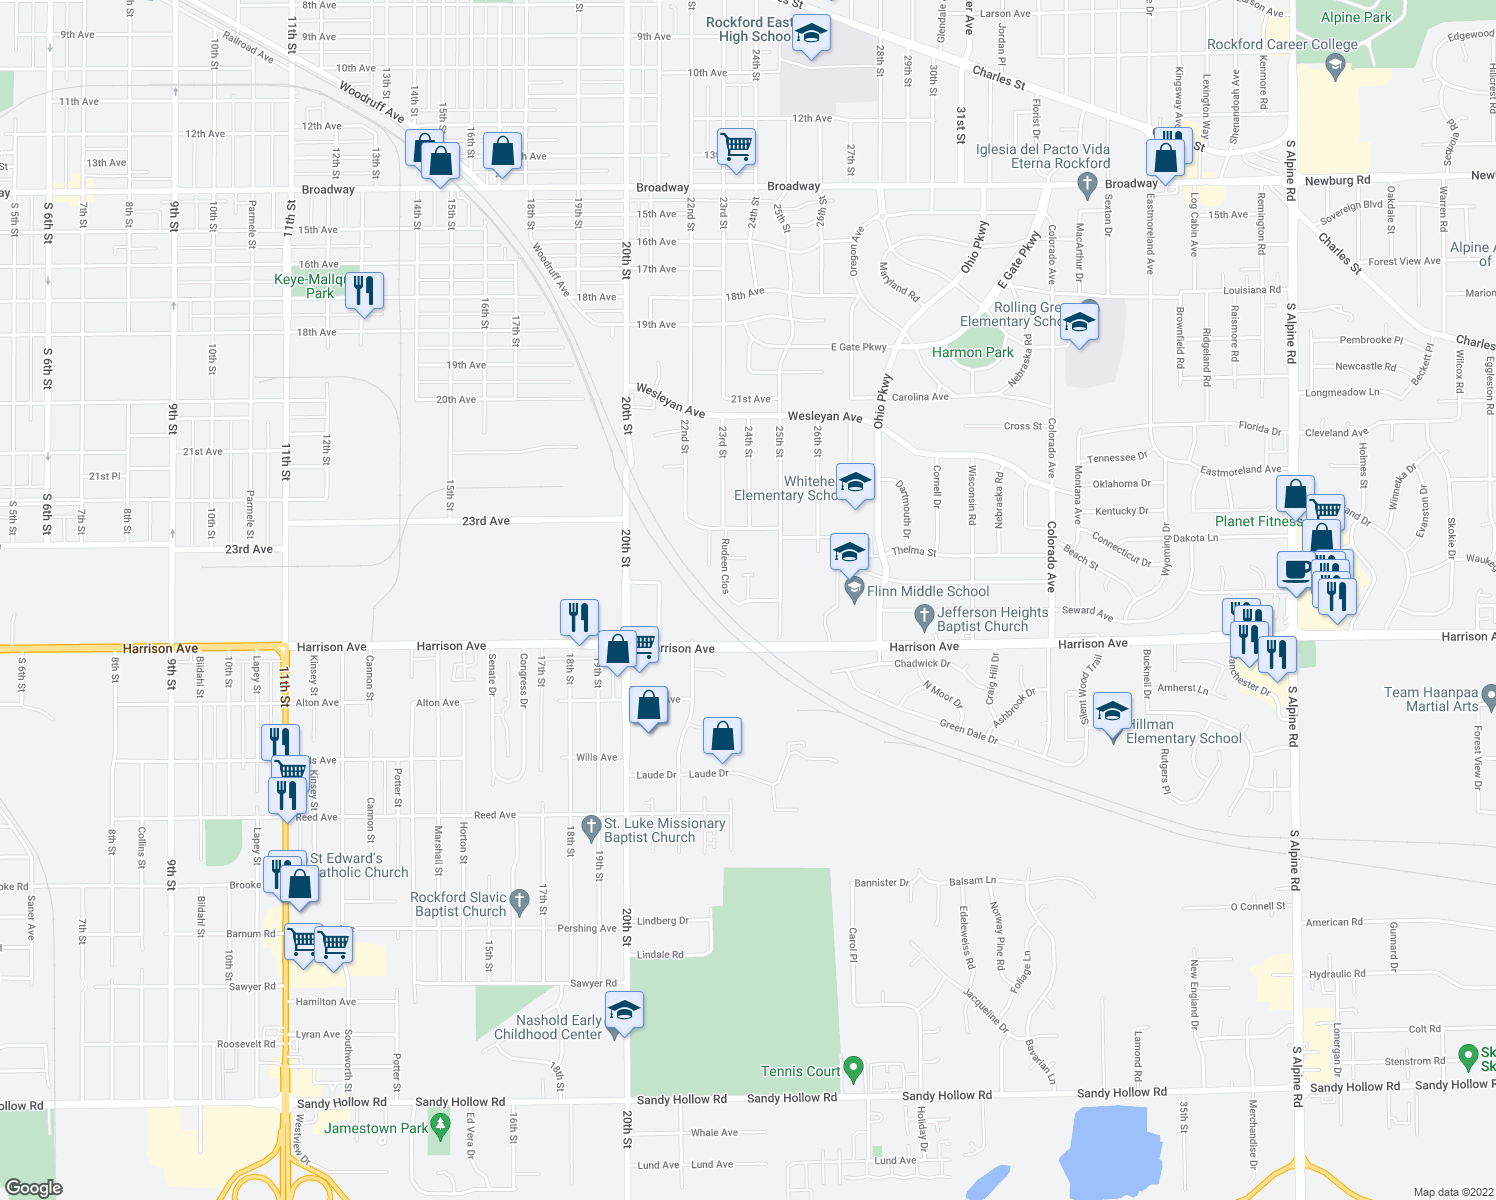 map of restaurants, bars, coffee shops, grocery stores, and more near Rudeen Close in Rockford